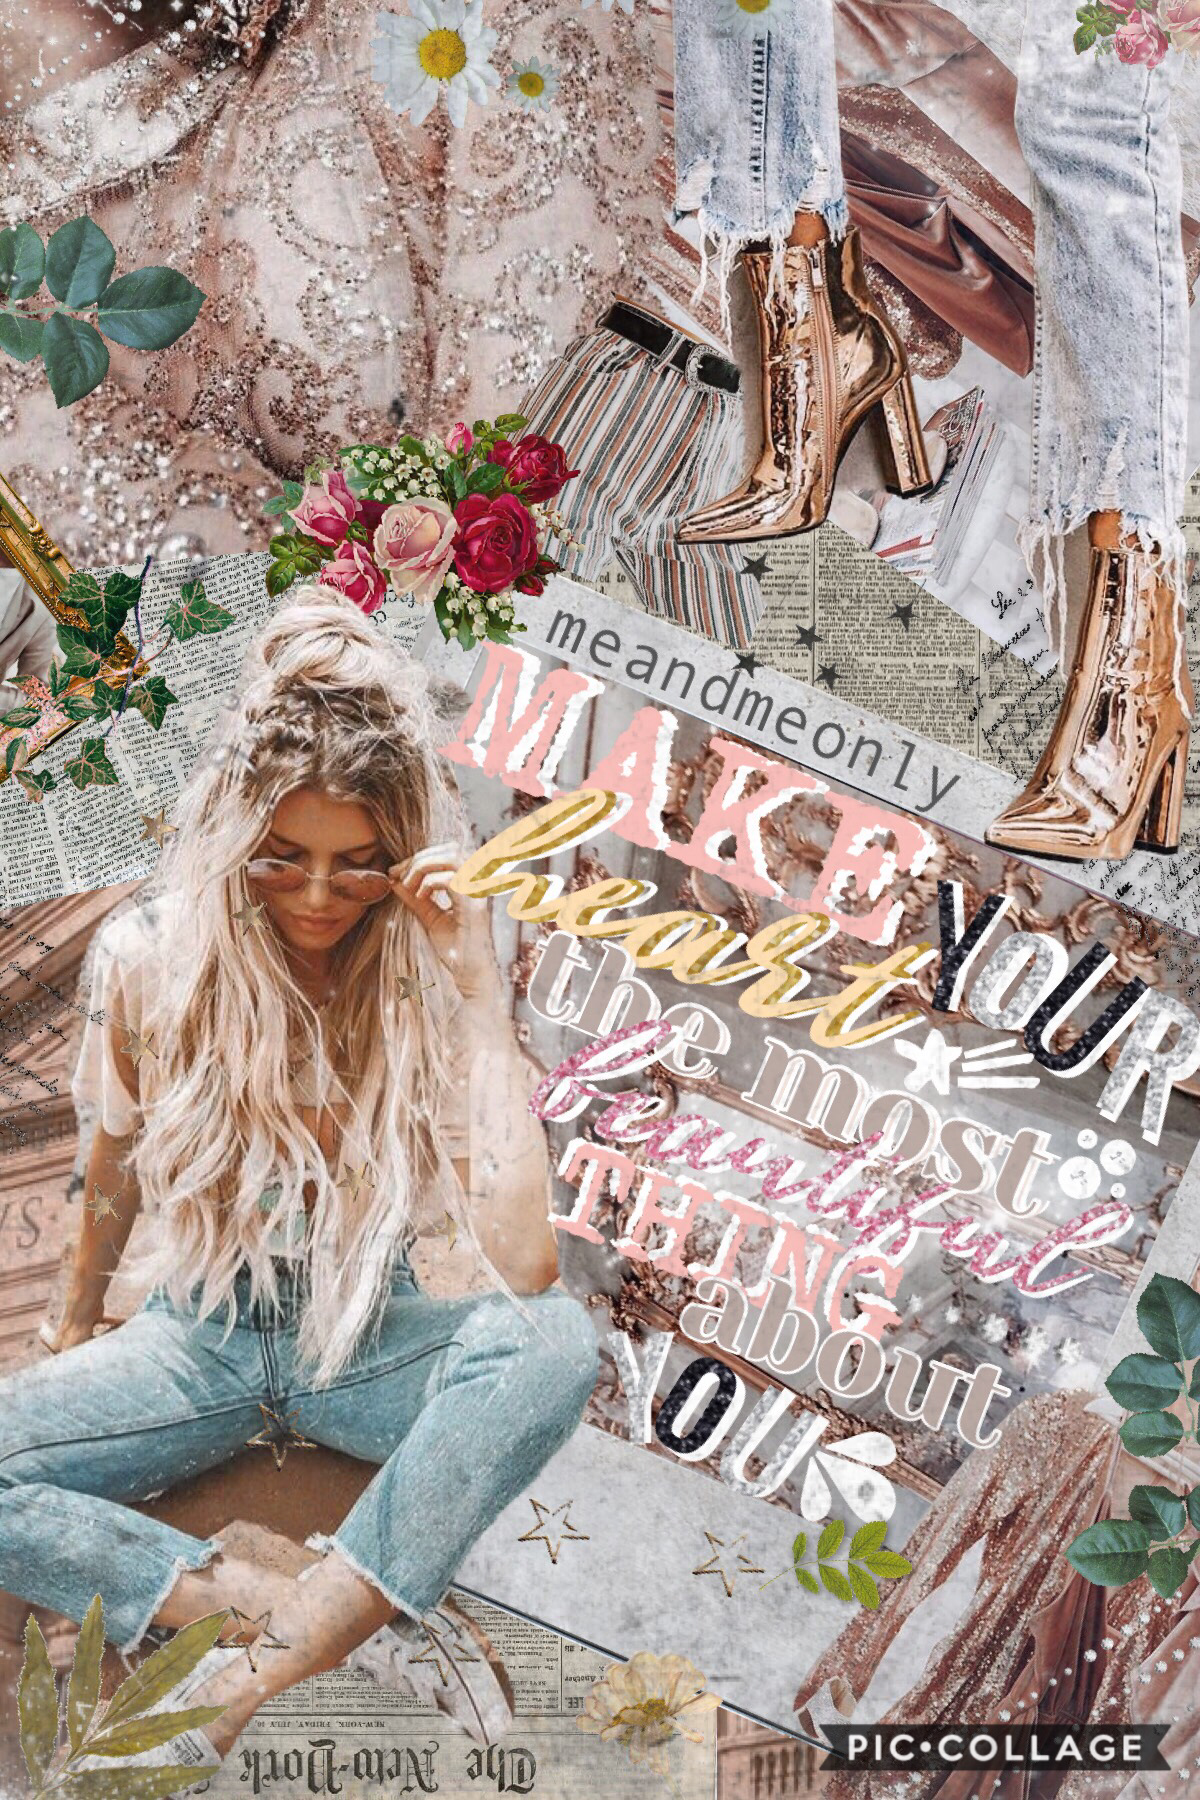 heyo it's nearly New Year's Eve💞 this is an old edit I made but I didn't finish an edit today so I decided to post this! please go into my remixes and follow the instructions for a spam of likes💓🦋 anyway thanks so much for a brilliant 2018💫🌿☁️ love you al